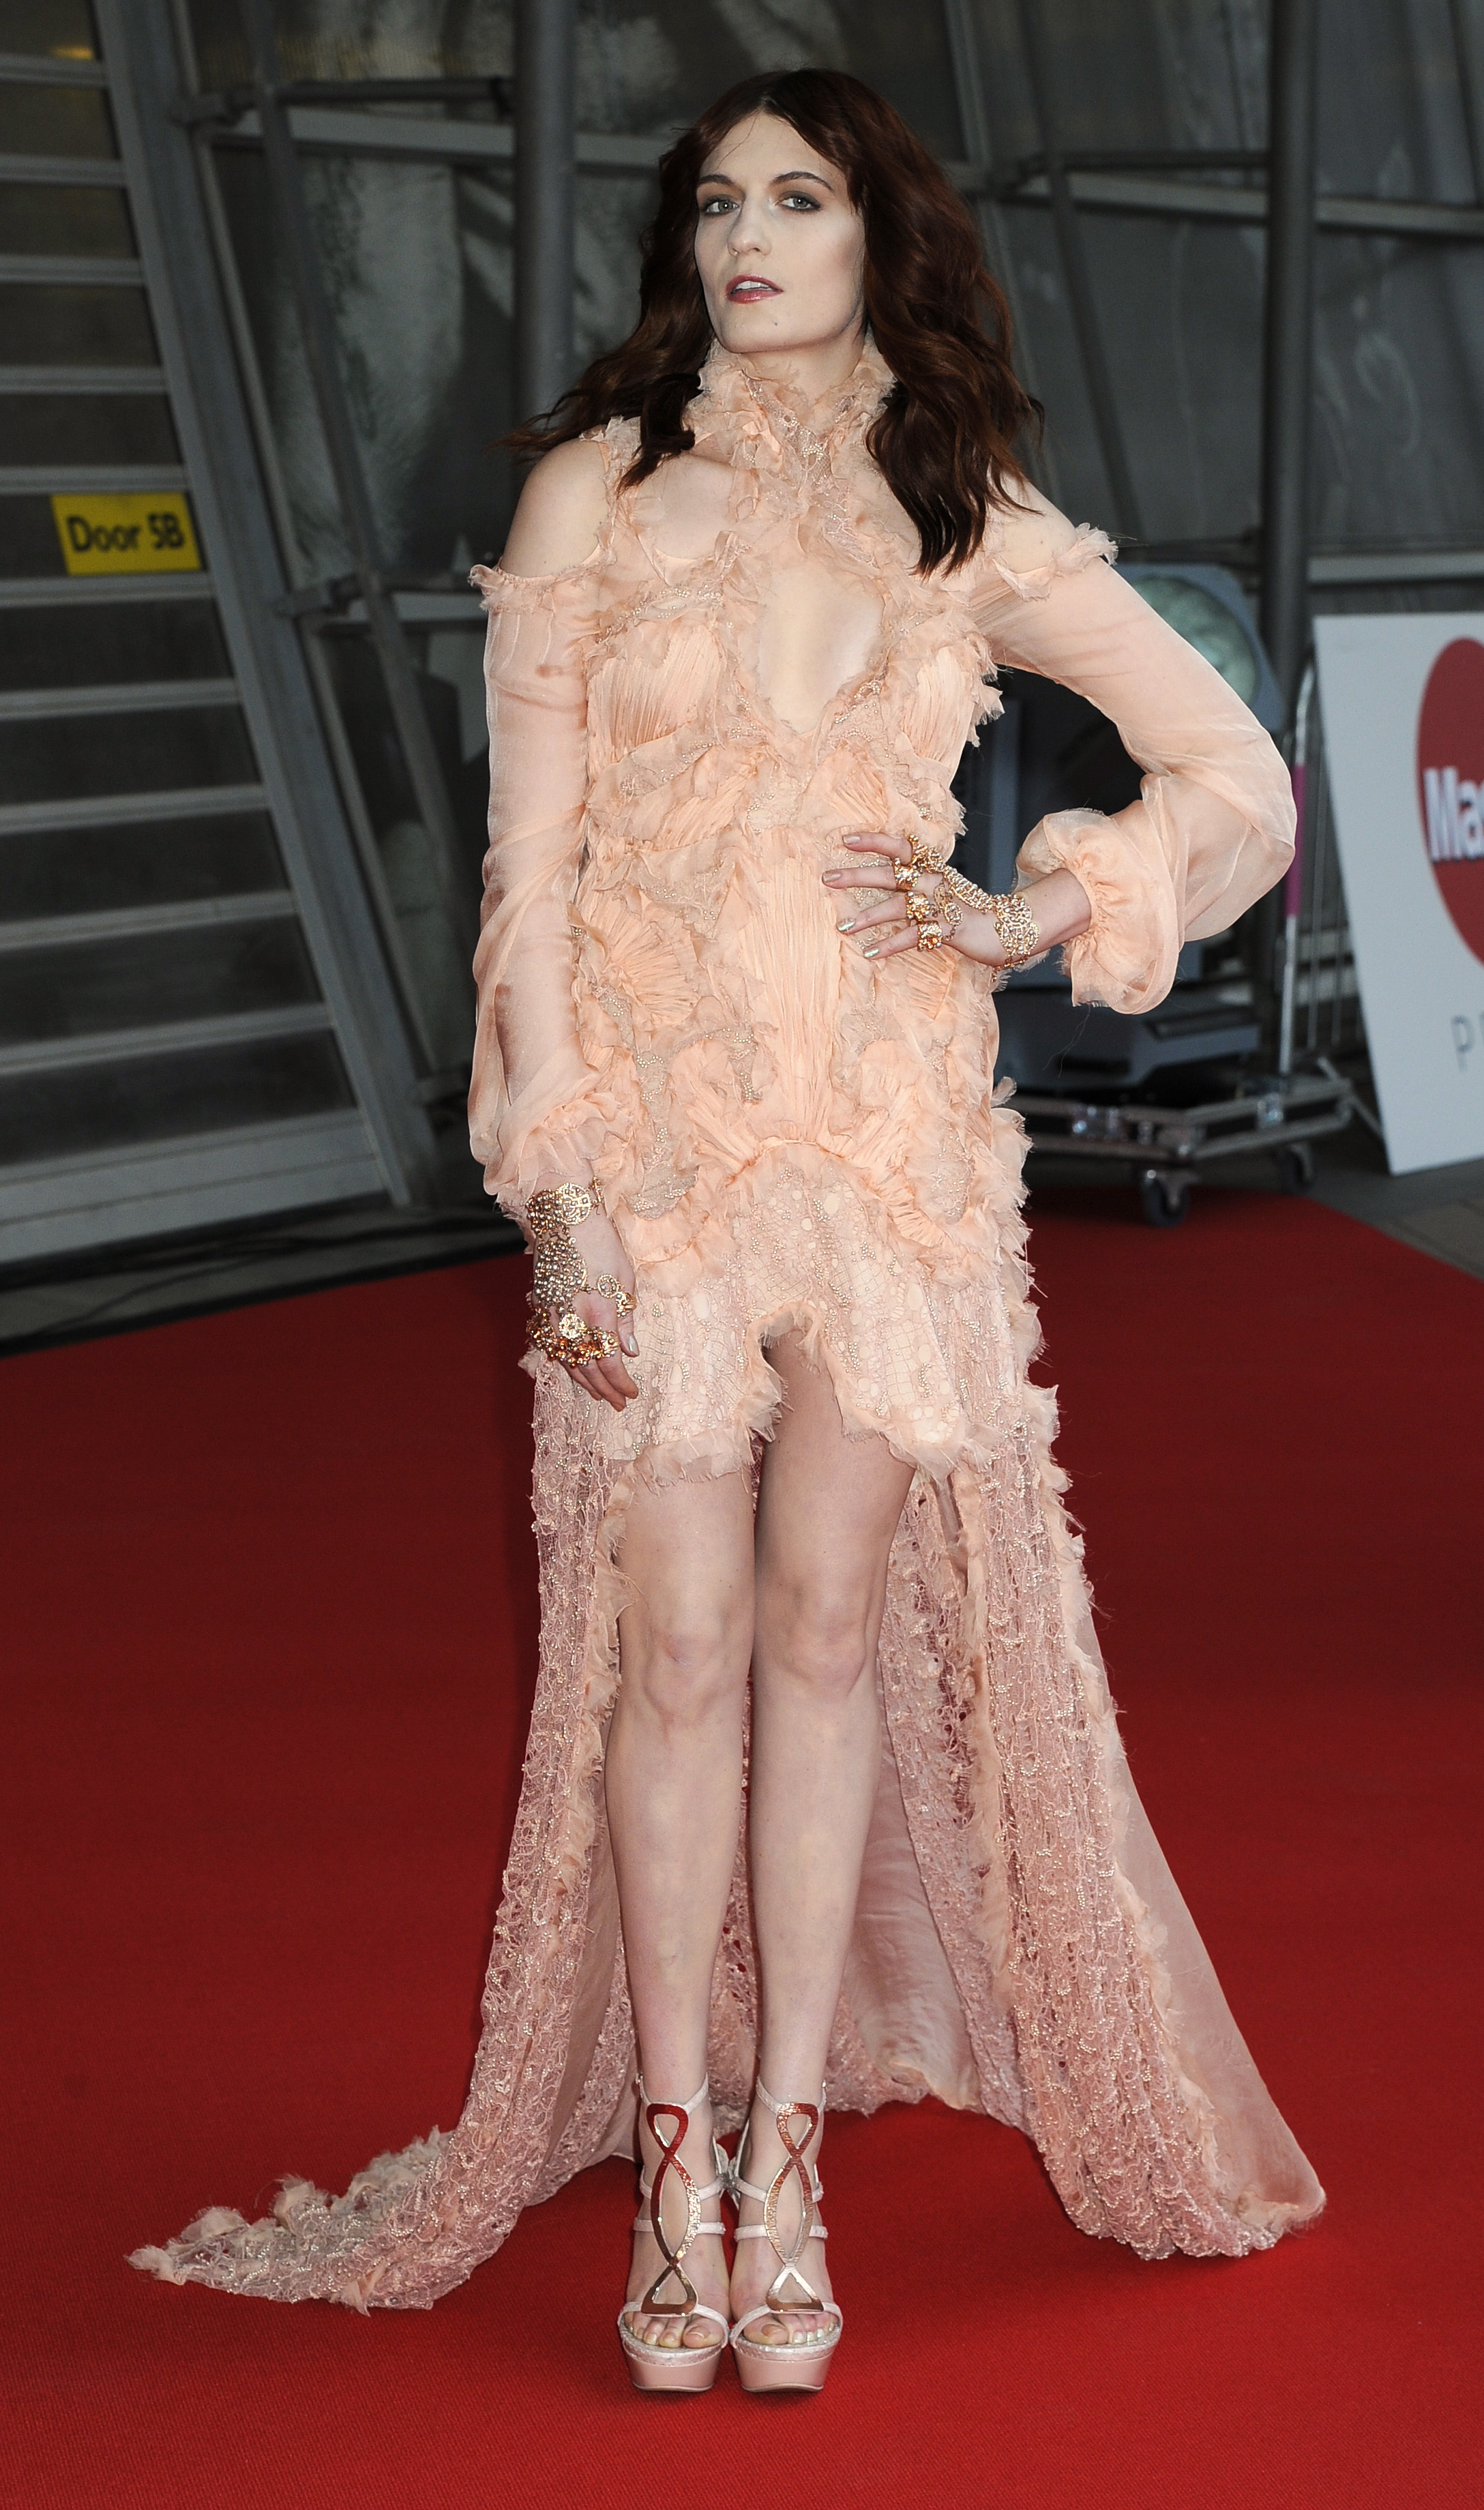 Florence Welch Fiona Apple rose dress